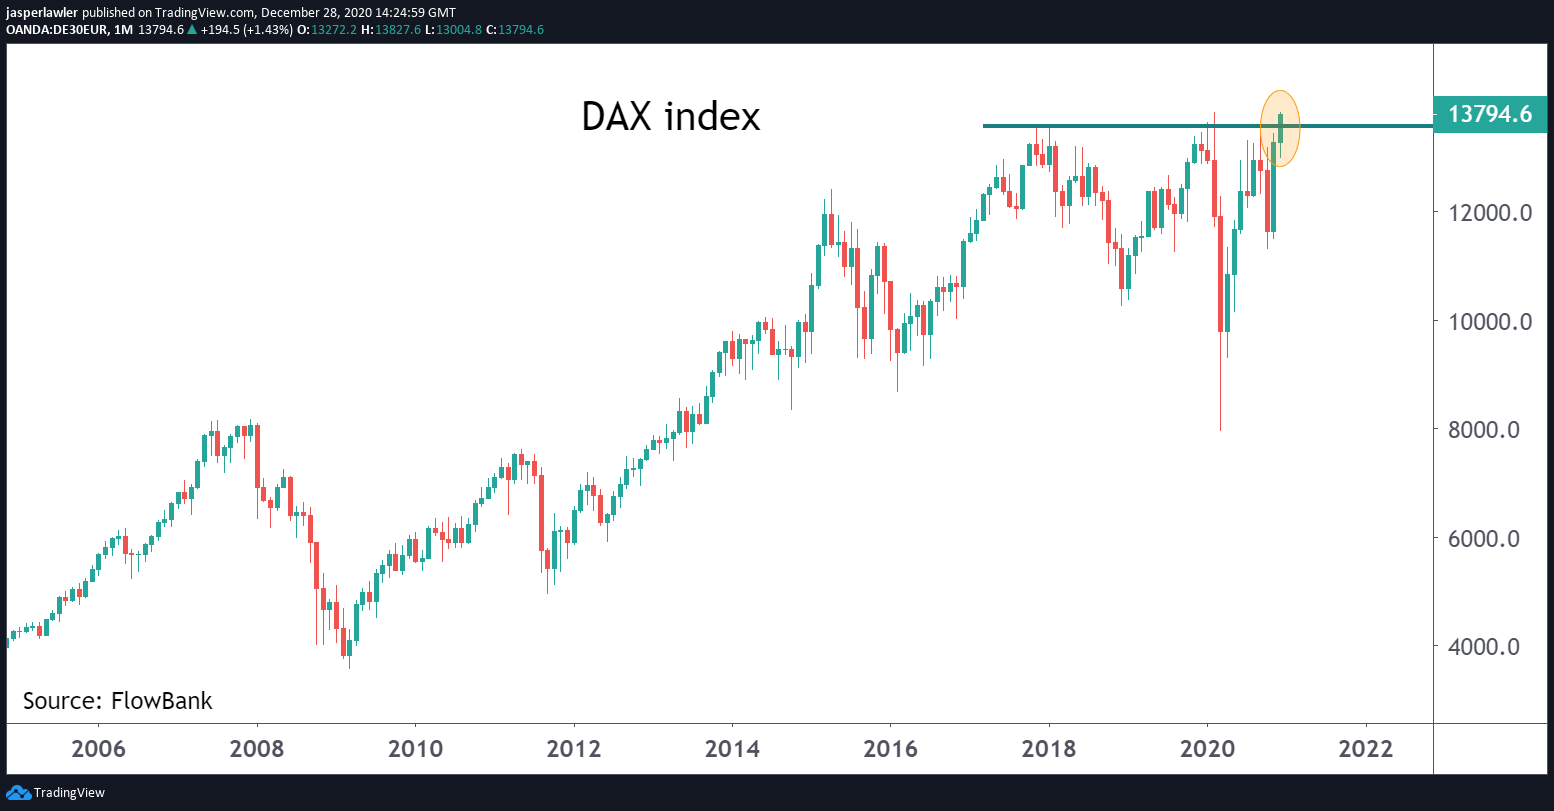 DAX index hits fresh intraday record high